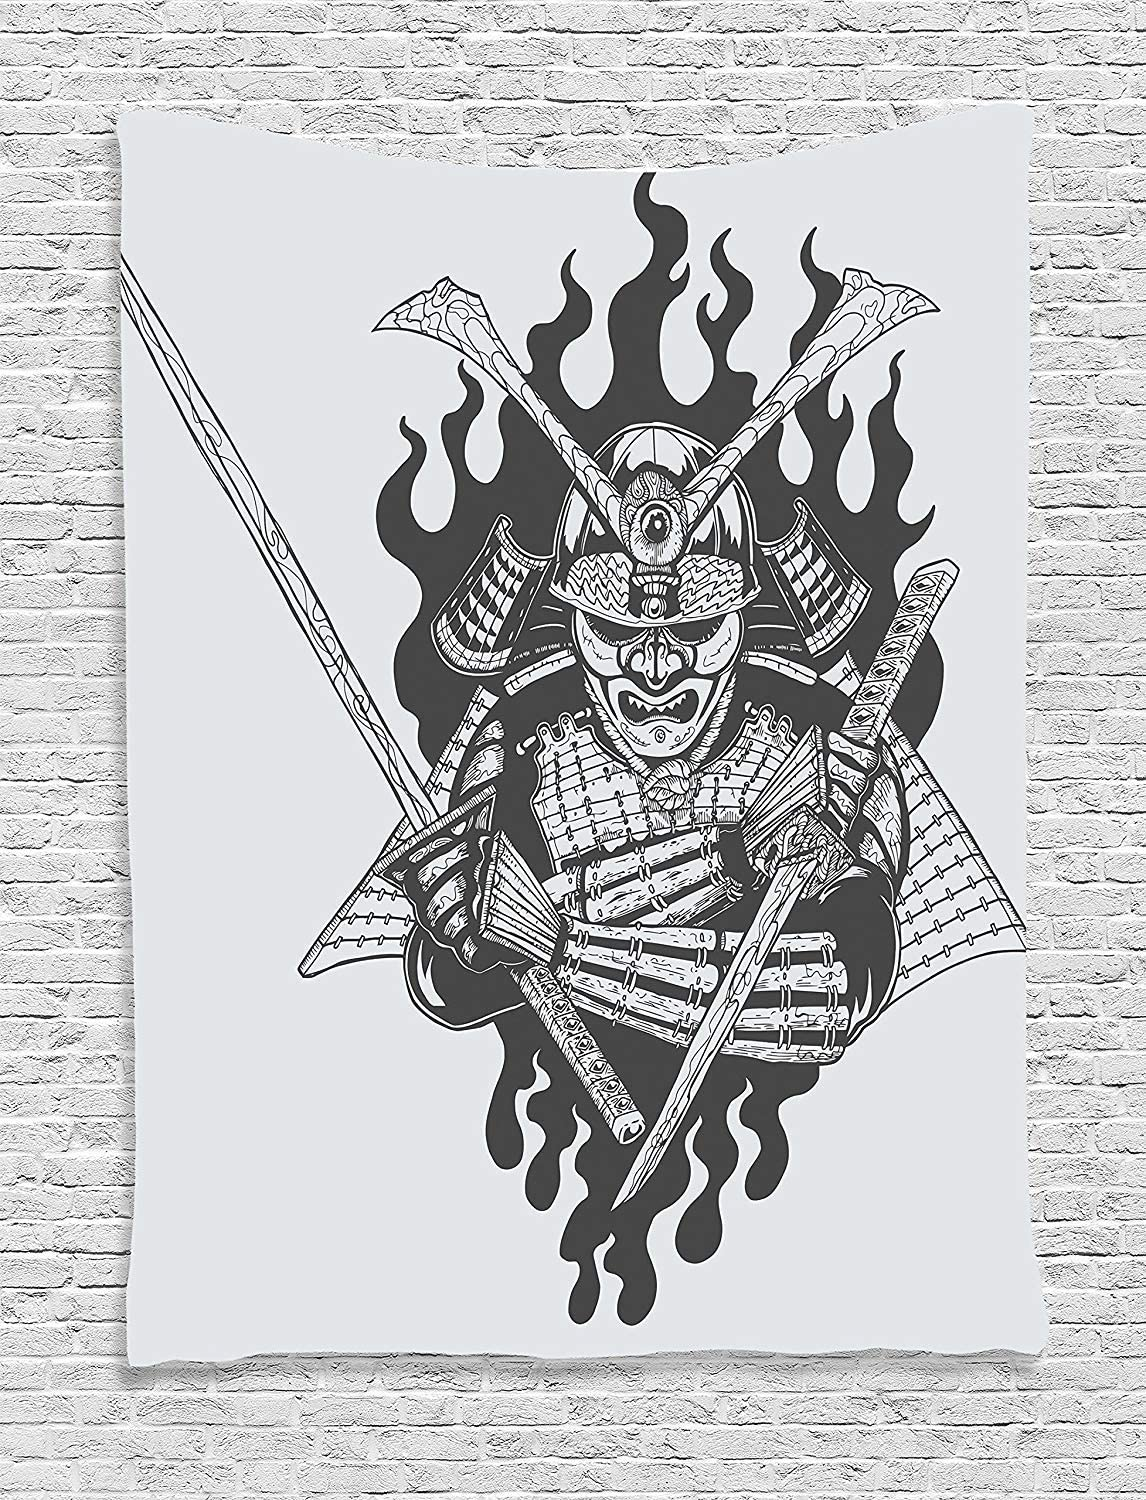 ADAM MARTINEZ JR Japanese Decor Collection, Fearsome Ghost Ninja in Fire Oriental War Mythology Spirituality Eastern Fighter Print, Bedroom Living Room Dorm Wall Hanging Tapestry, Black White